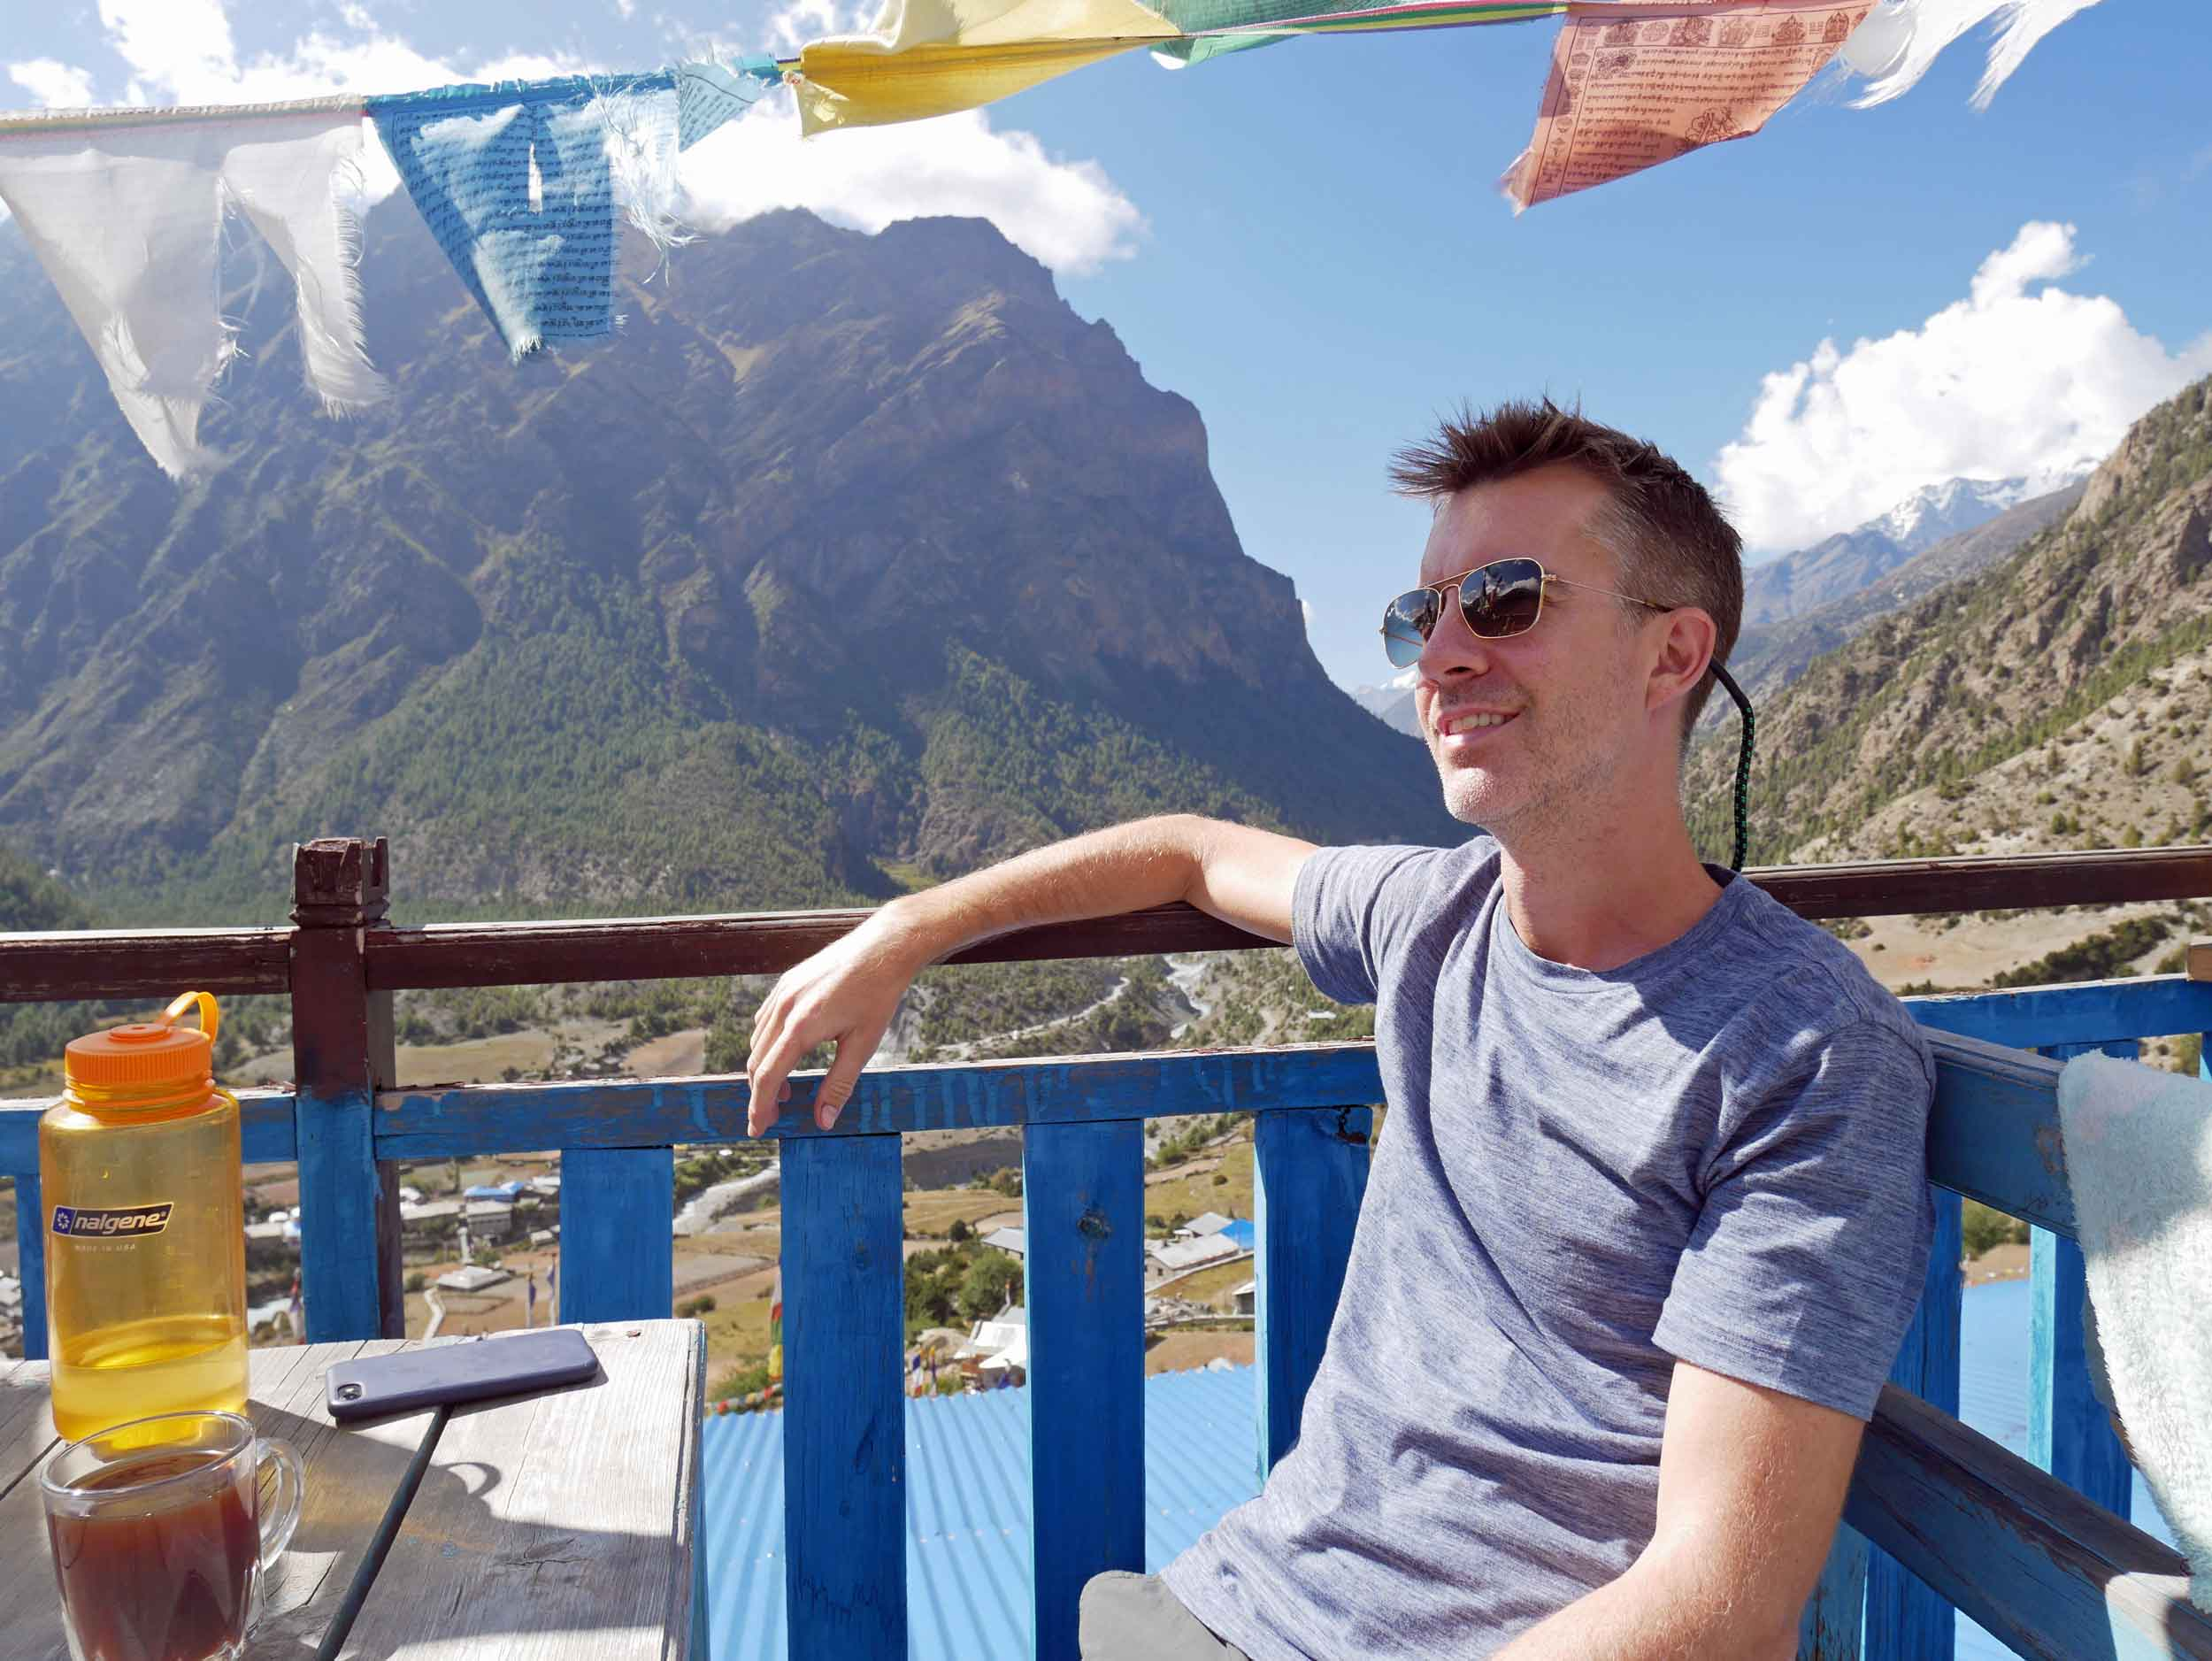 Trey taking in the view over lunch in Upper Pisang.